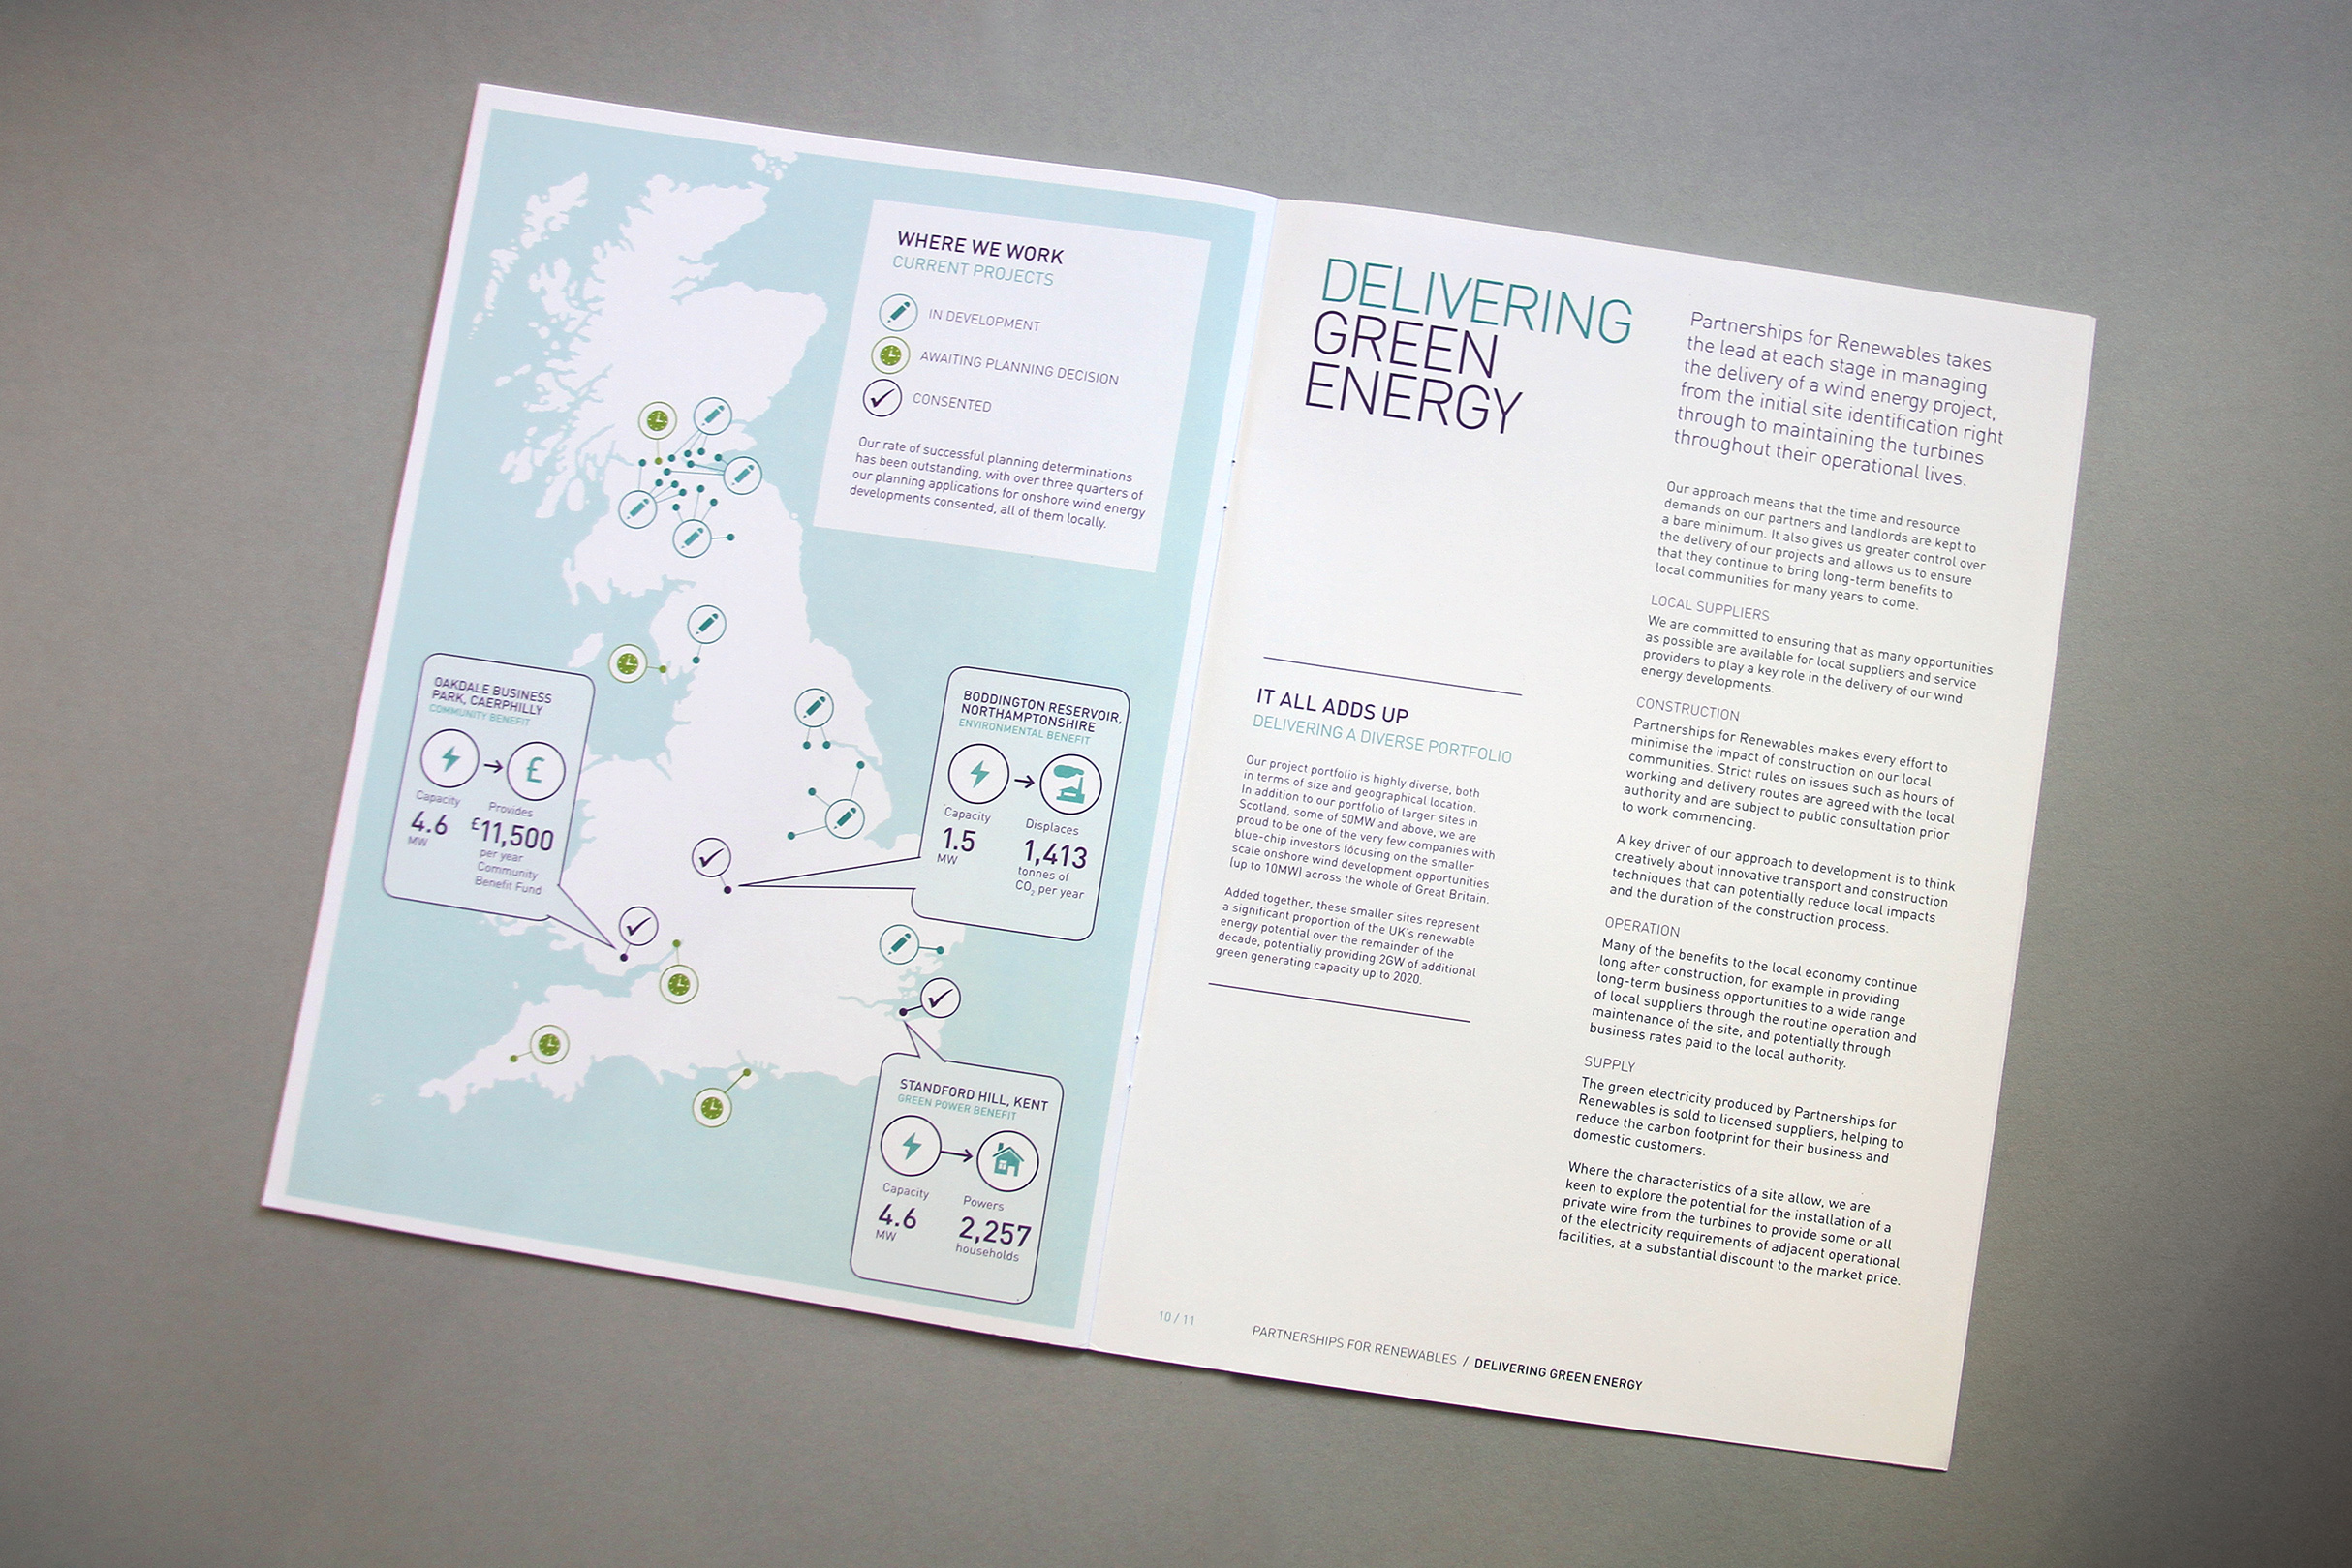 Standford Hill Wind Project Marketing Material Brochure Cleantech Energy